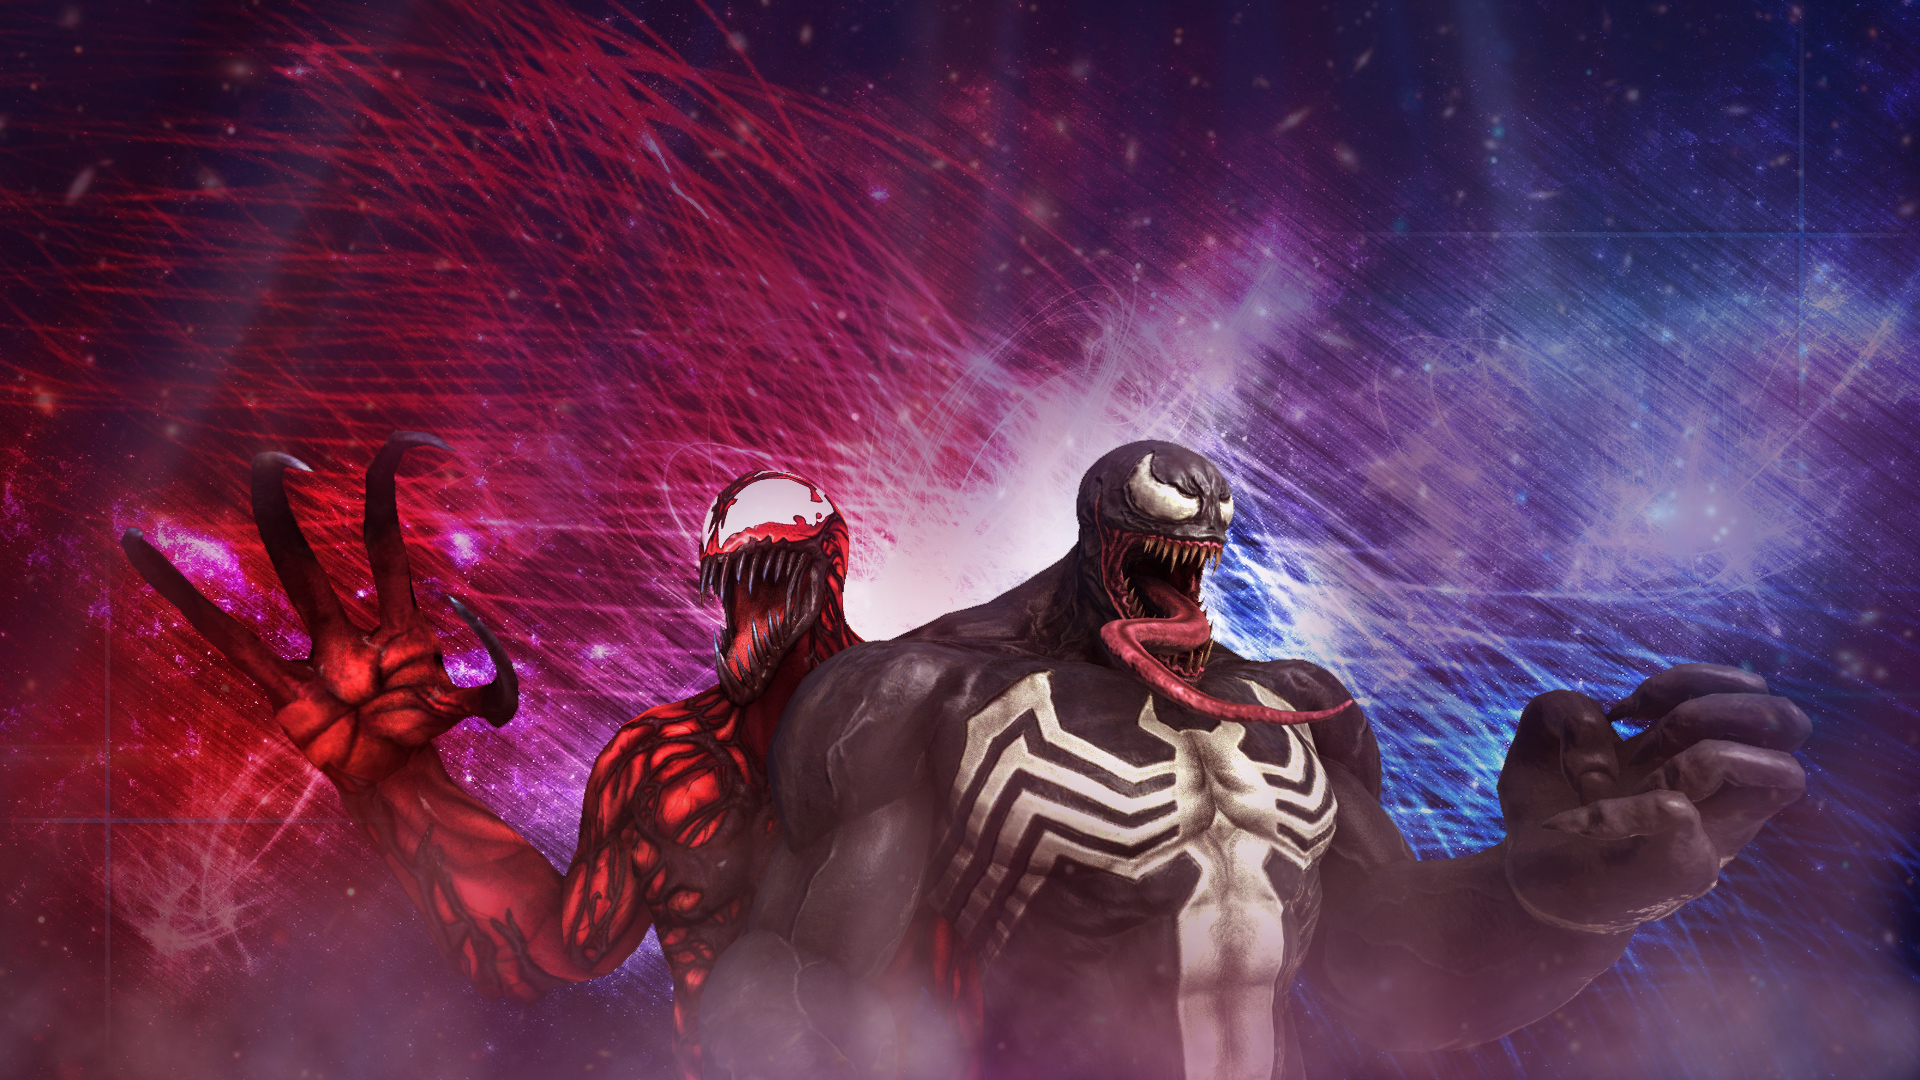 2560x1440 Carnage And Venom 1440P Resolution HD 4k ...